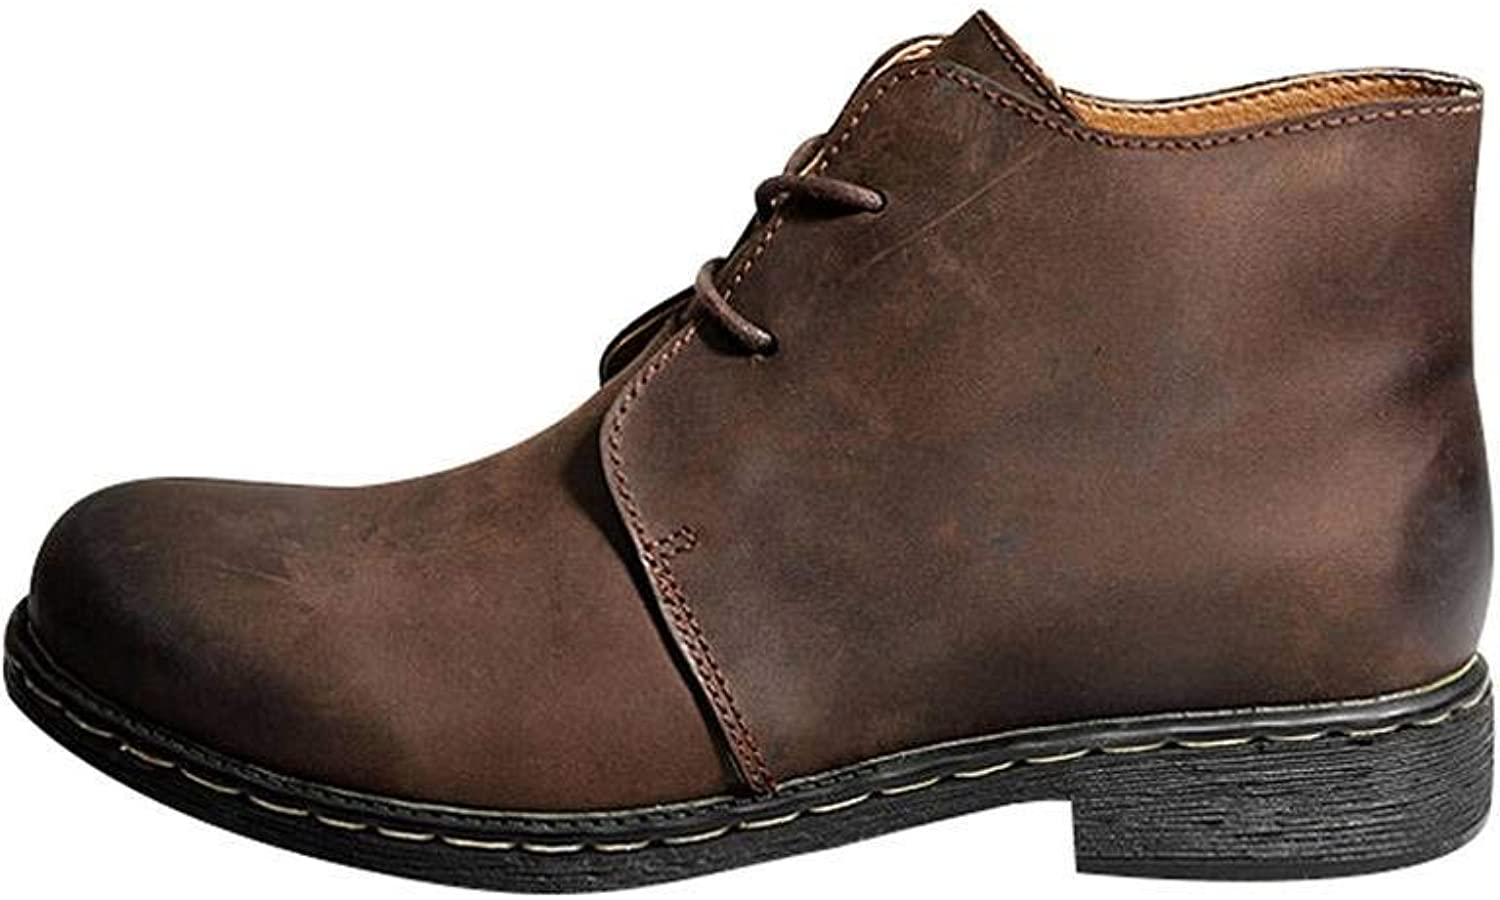 Bigassets Men's Winter Autumn Leather Martin Boots Lace-up Boots